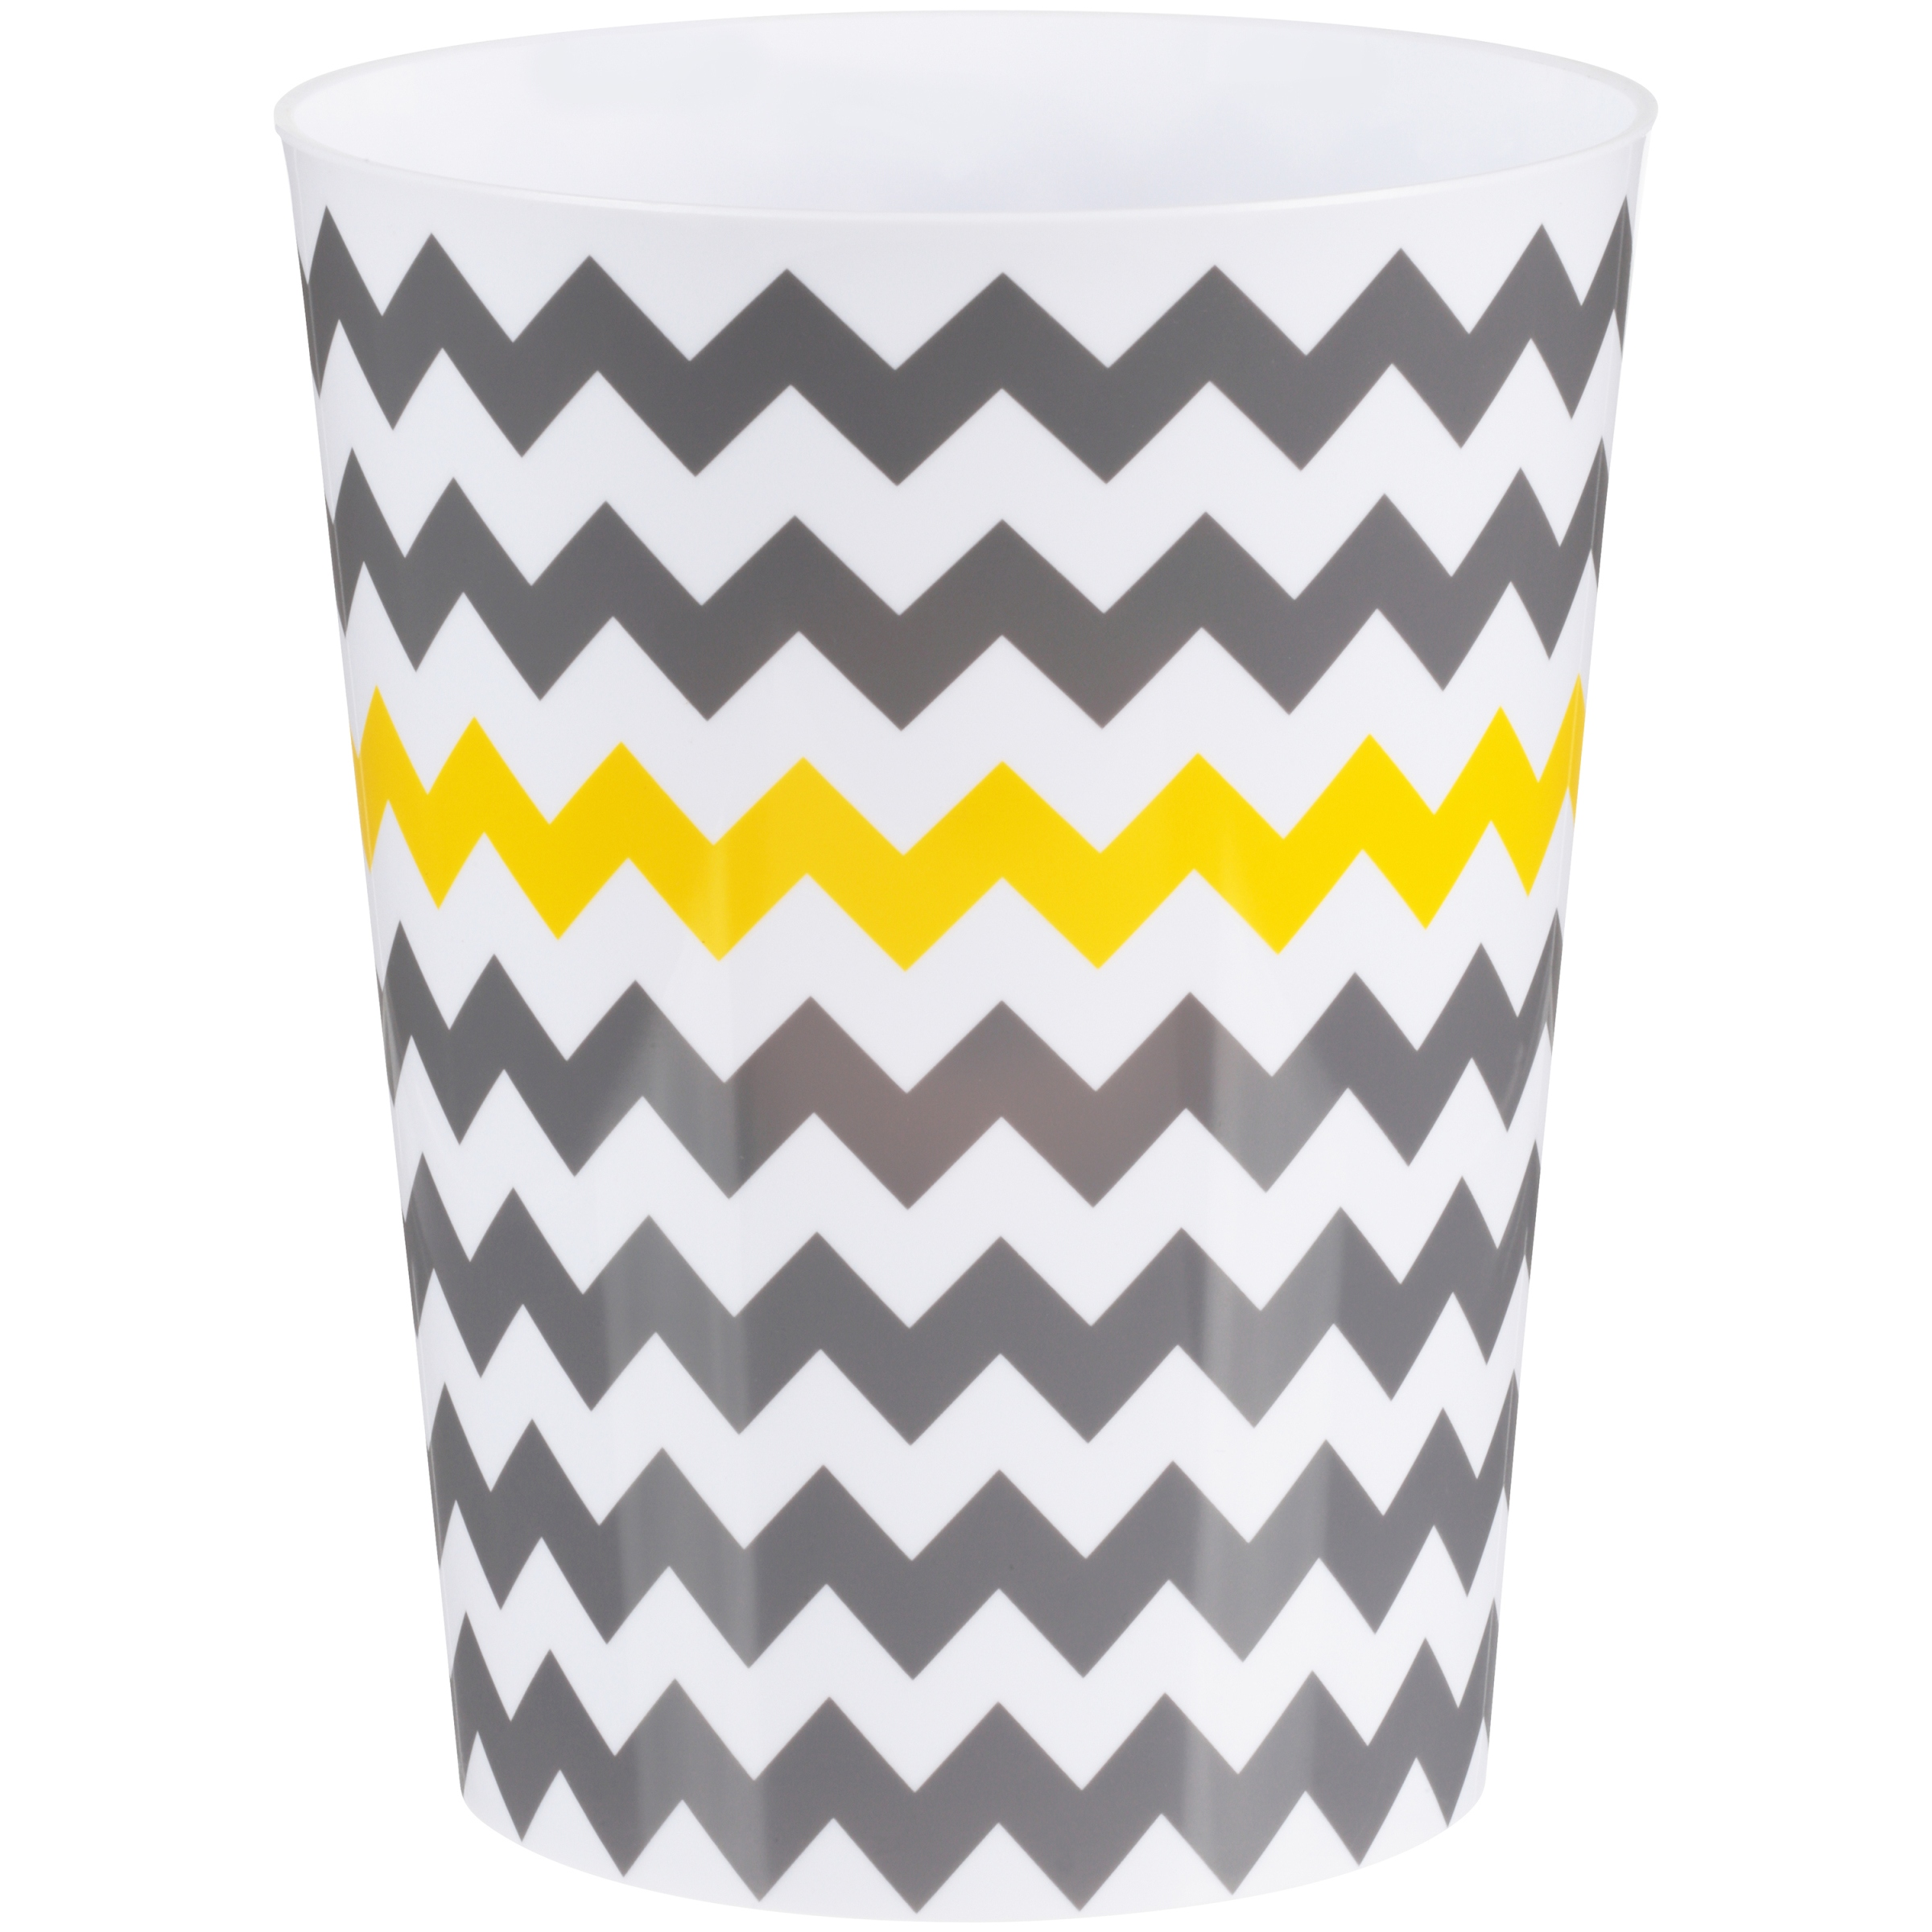 InterDesign Chevron Wastebasket Trash Can, White and Gray with Yellow